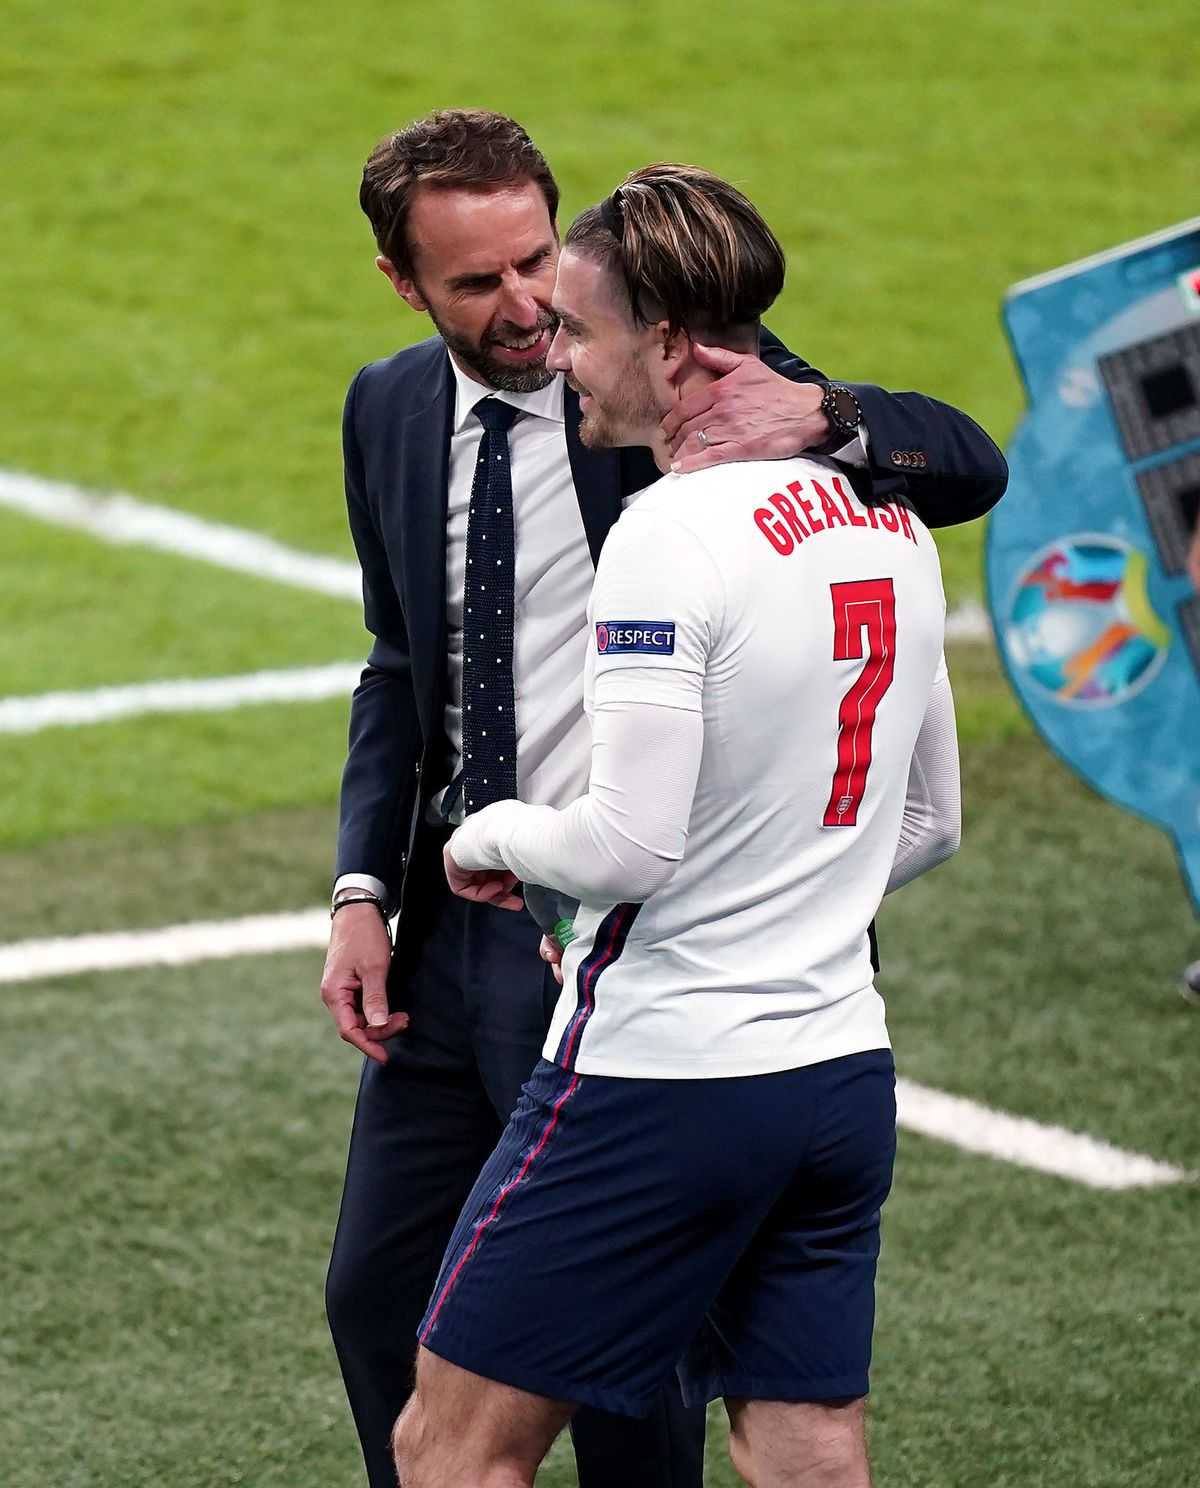 Gareth Southgate speaks to Jack Grealish as he prepares to come on during Wednesday's semi-final.